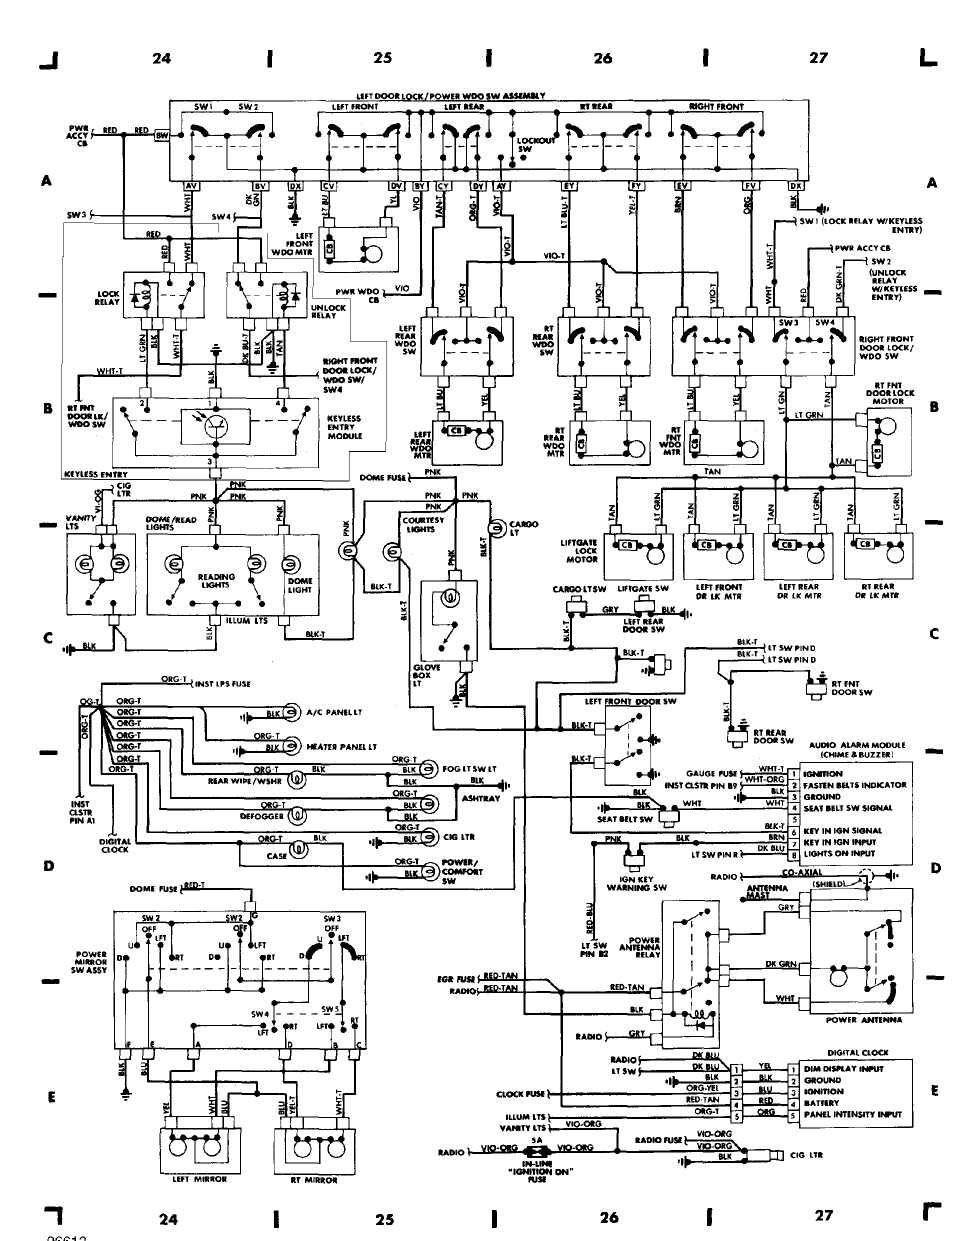 wiring_diagrams_html_61f5e0ad wiring diagrams 1984 1991 jeep cherokee (xj) jeep 2009 Jeep Wrangler Wiring Diagram at creativeand.co